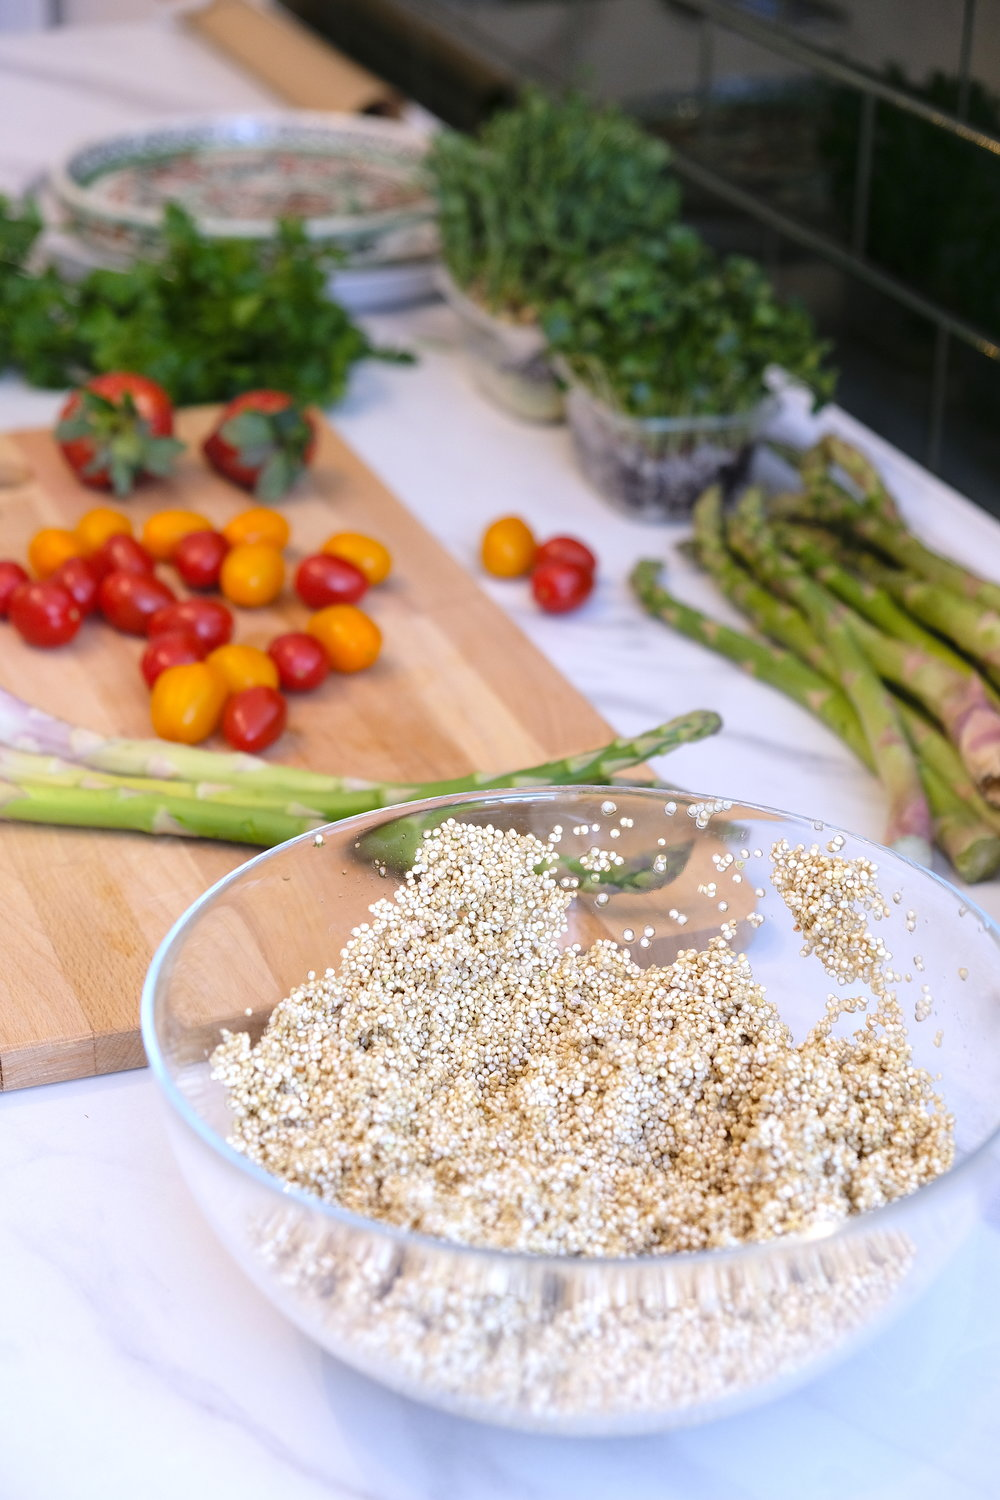 1_Homecooking_quinoa cu salata de legule_The Nature Project.JPG